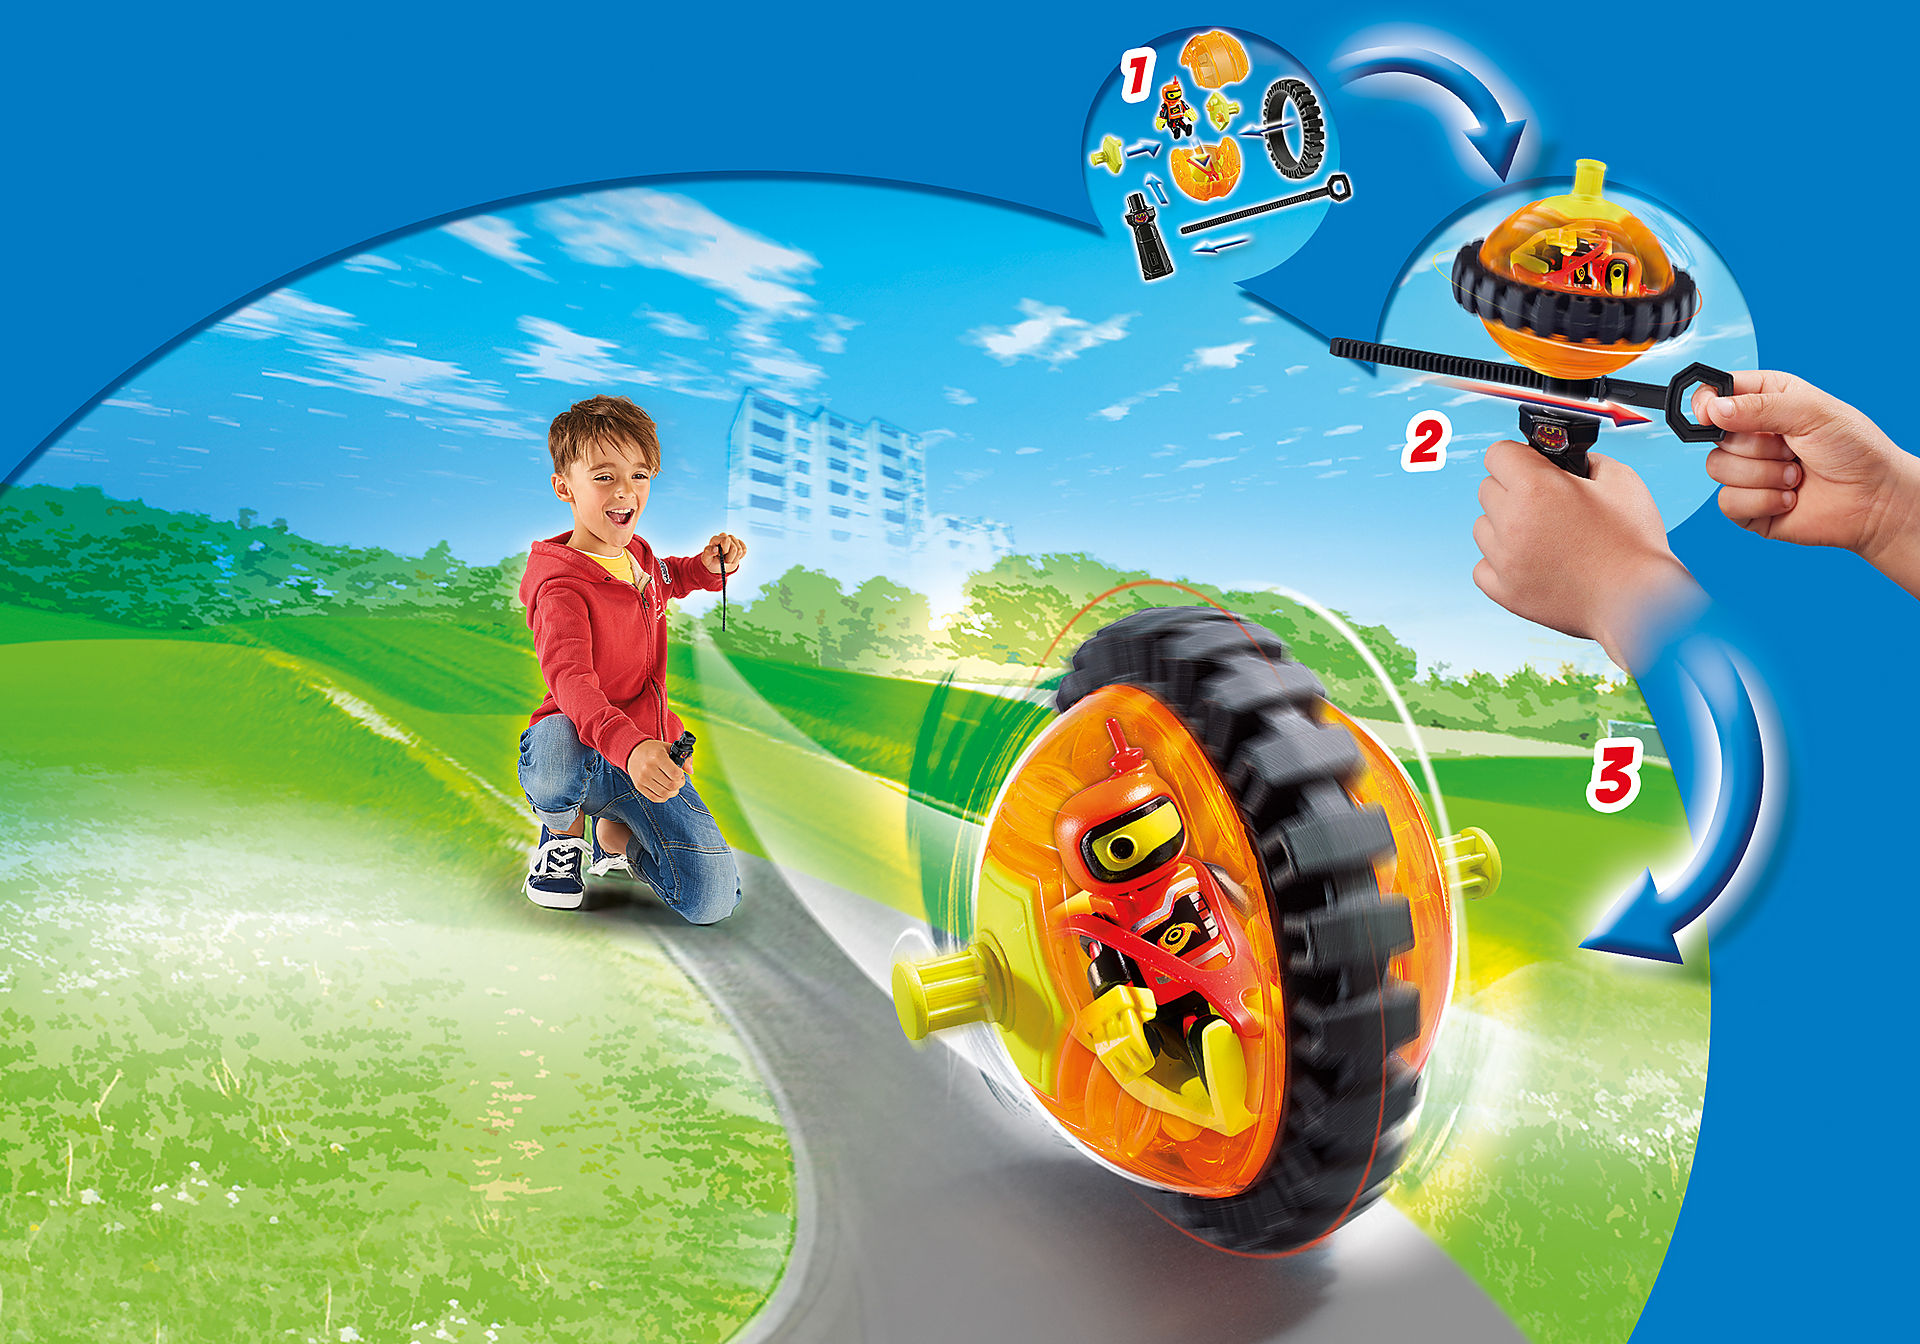 http://media.playmobil.com/i/playmobil/9203_product_extra1/Orange Roller Racer